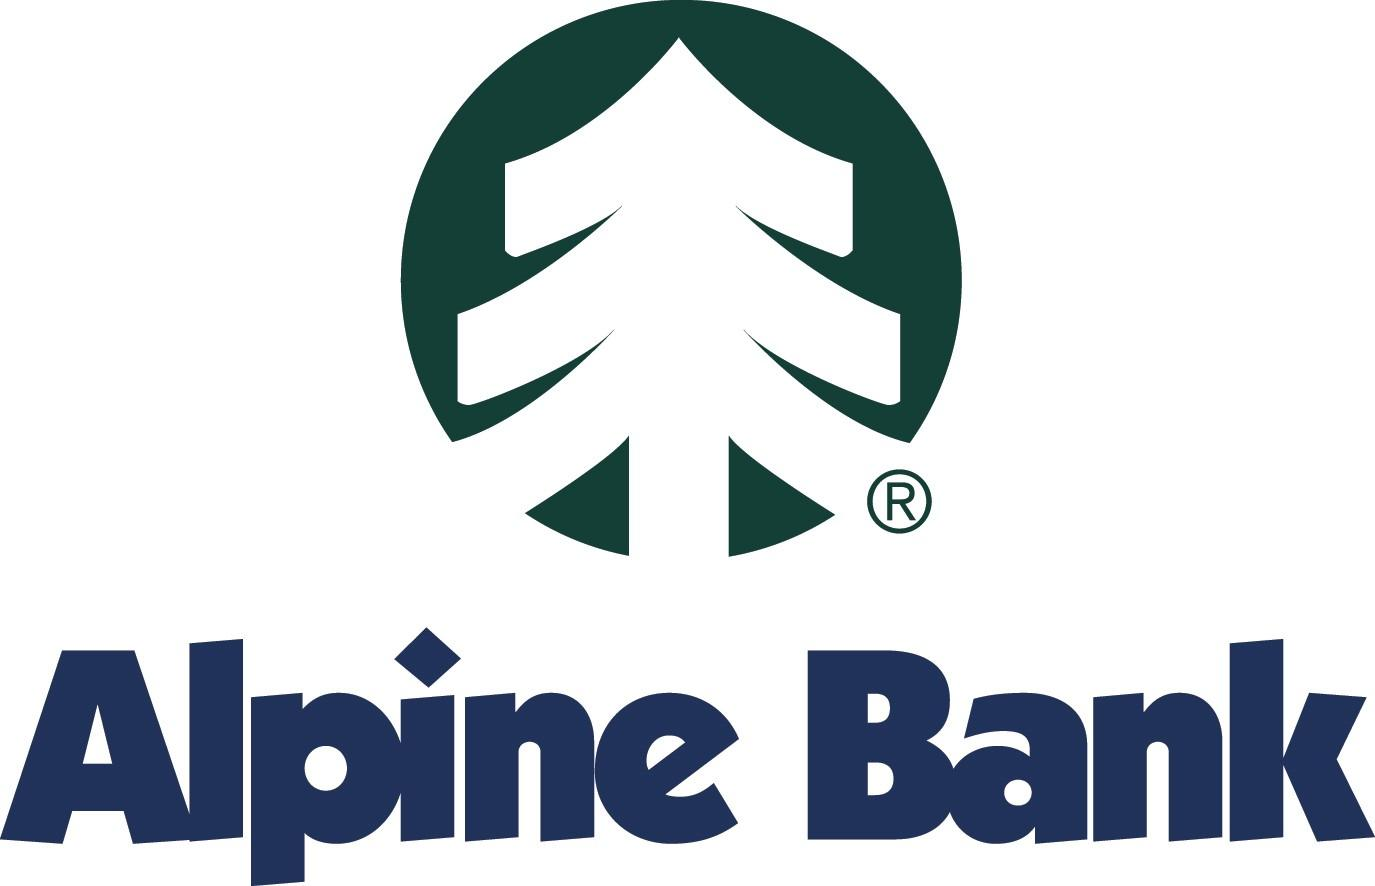 Alpine-Bank-Color-stacked-logo_0